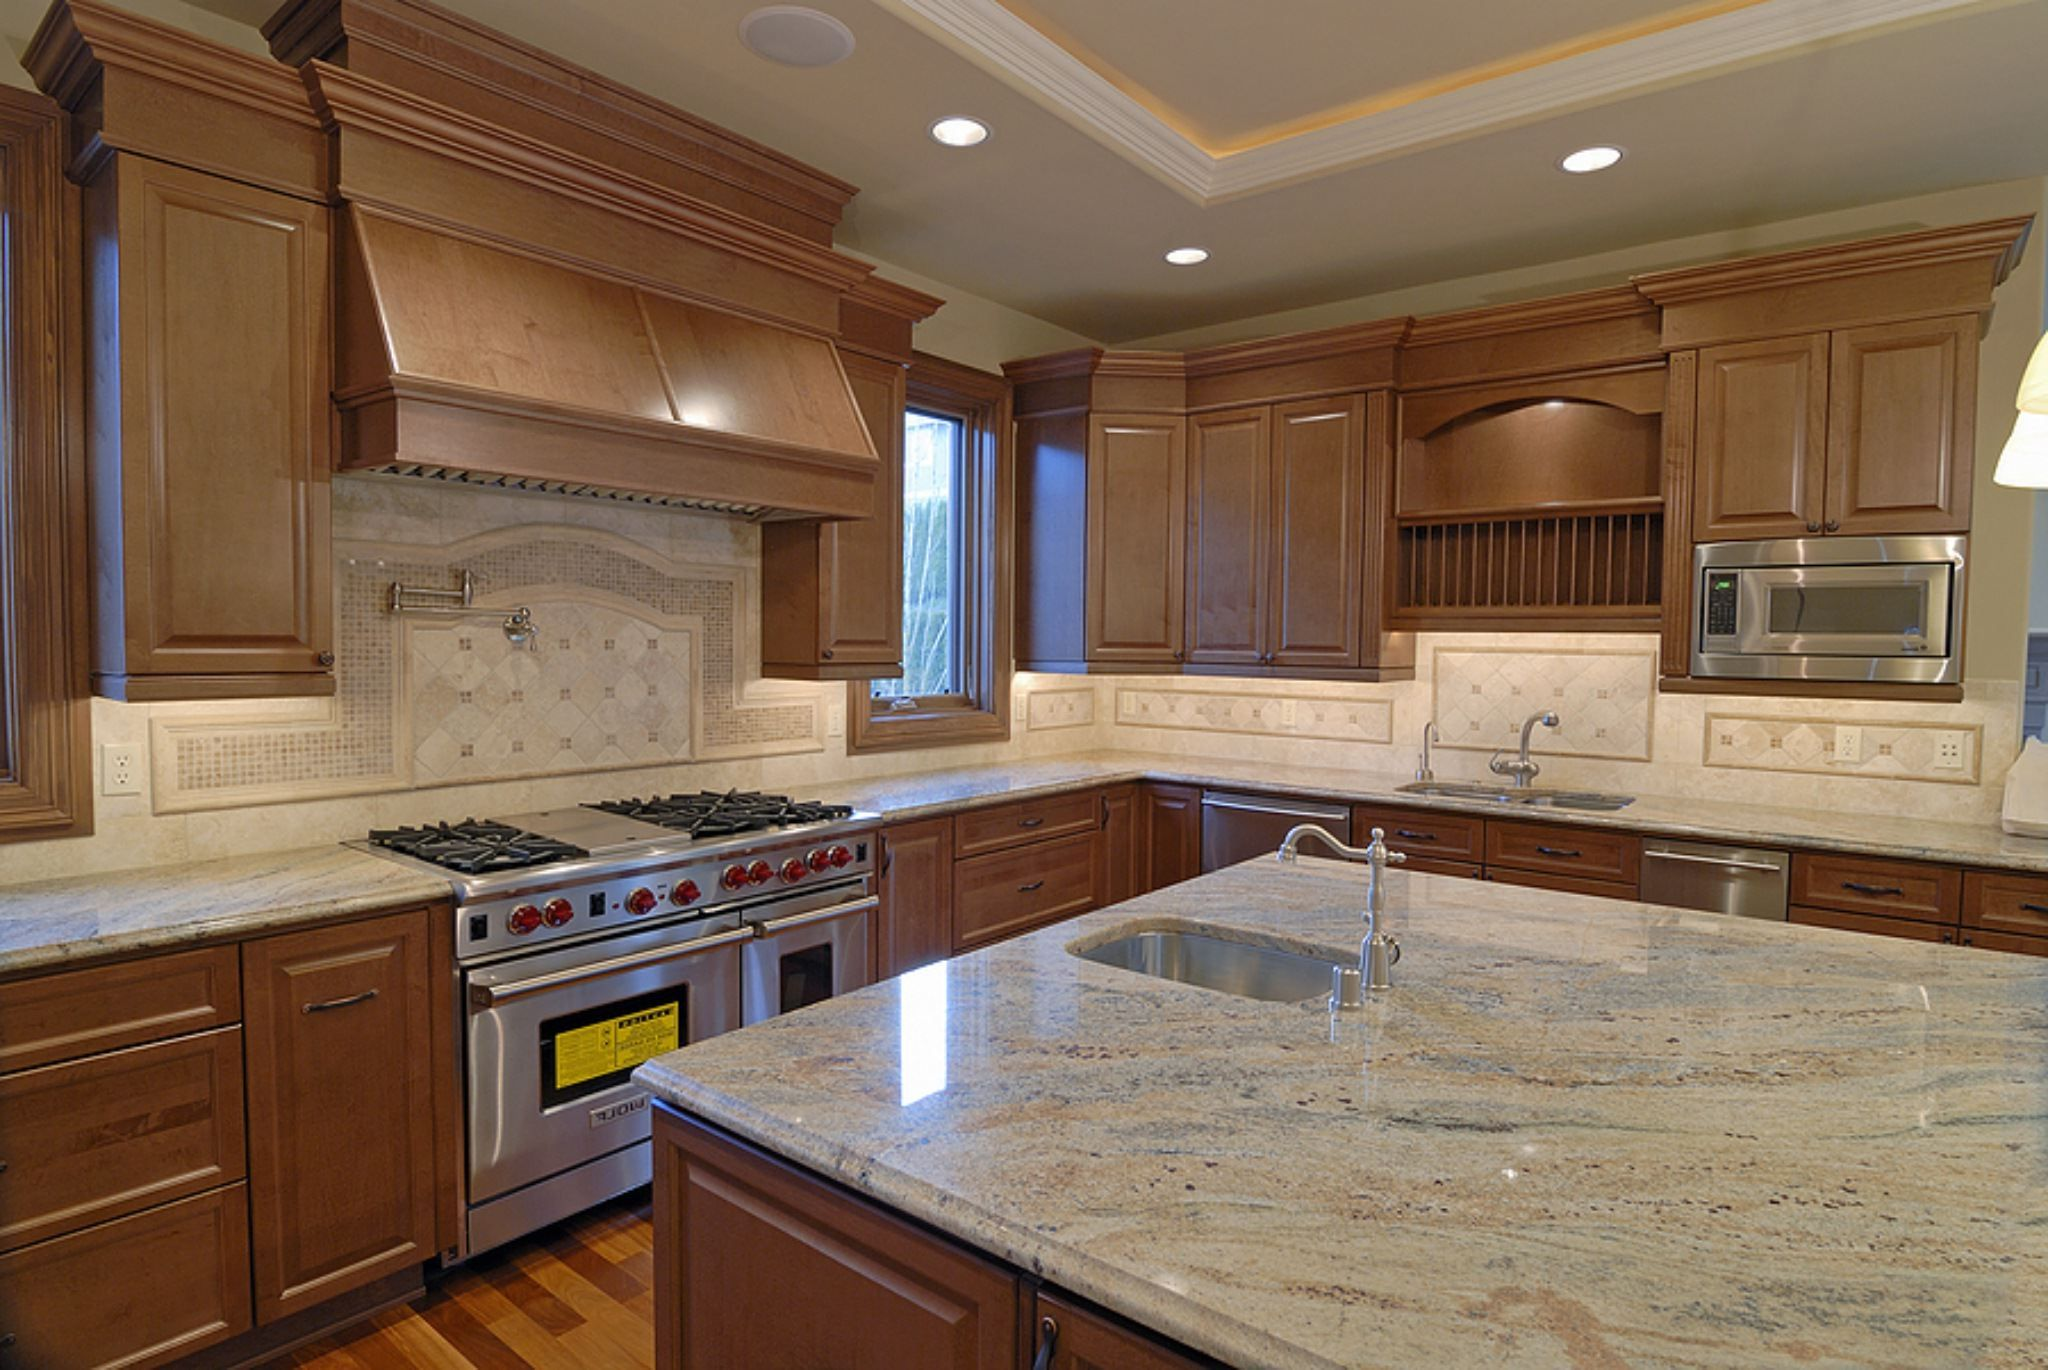 Wood Countertop Brown Wooden Laminate Teak Wood Kitchen Cabinet Kitchen Cabinets And Granite White Cabinets White Countertops White Cabinets Black Countertops